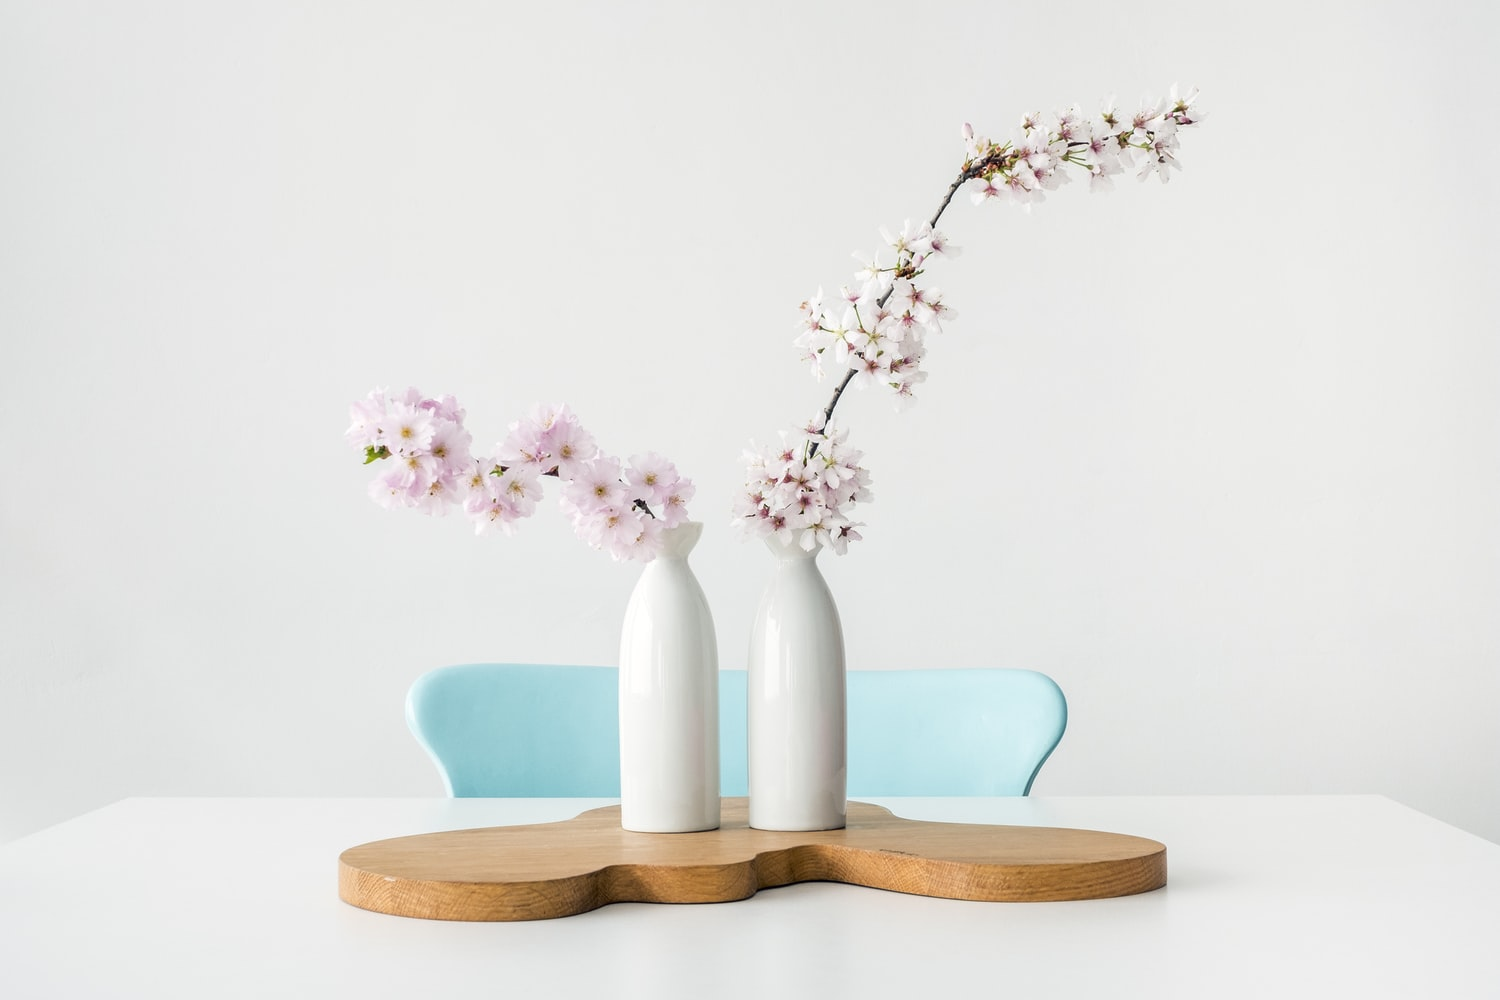 two white vase with flowers